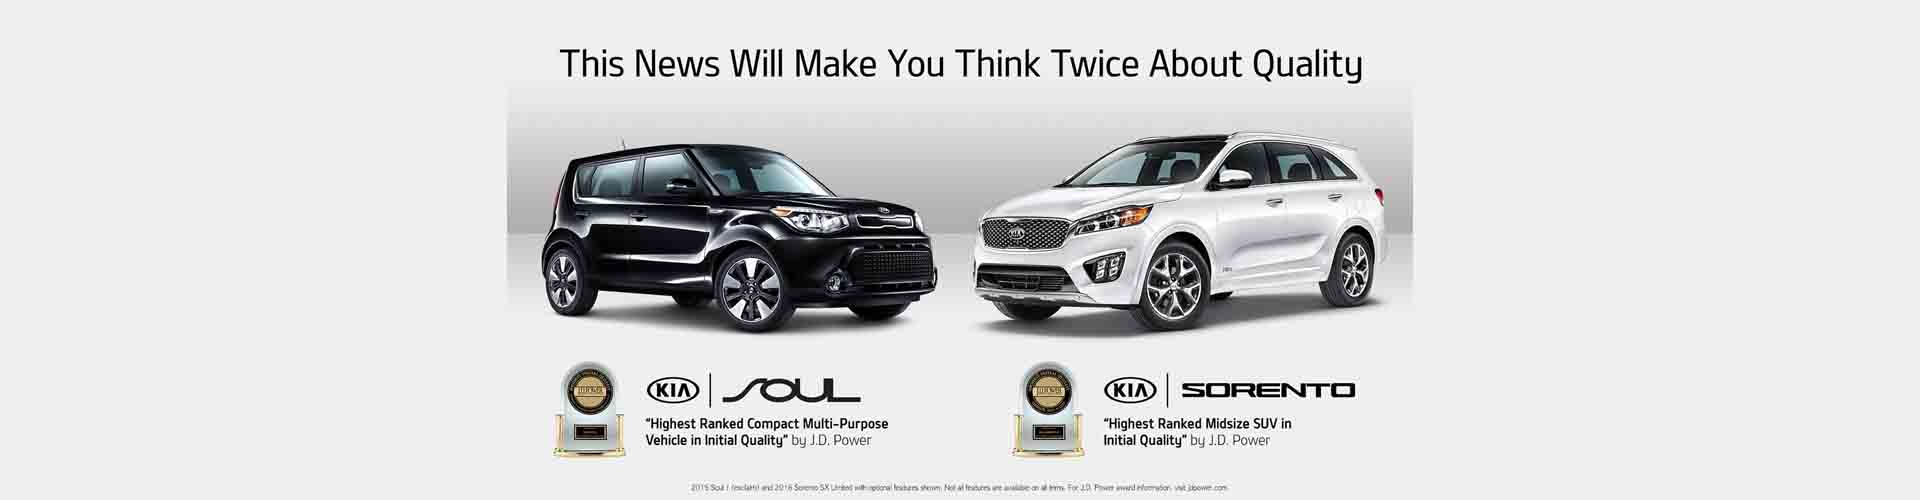 JD Power Award 2017 KIA